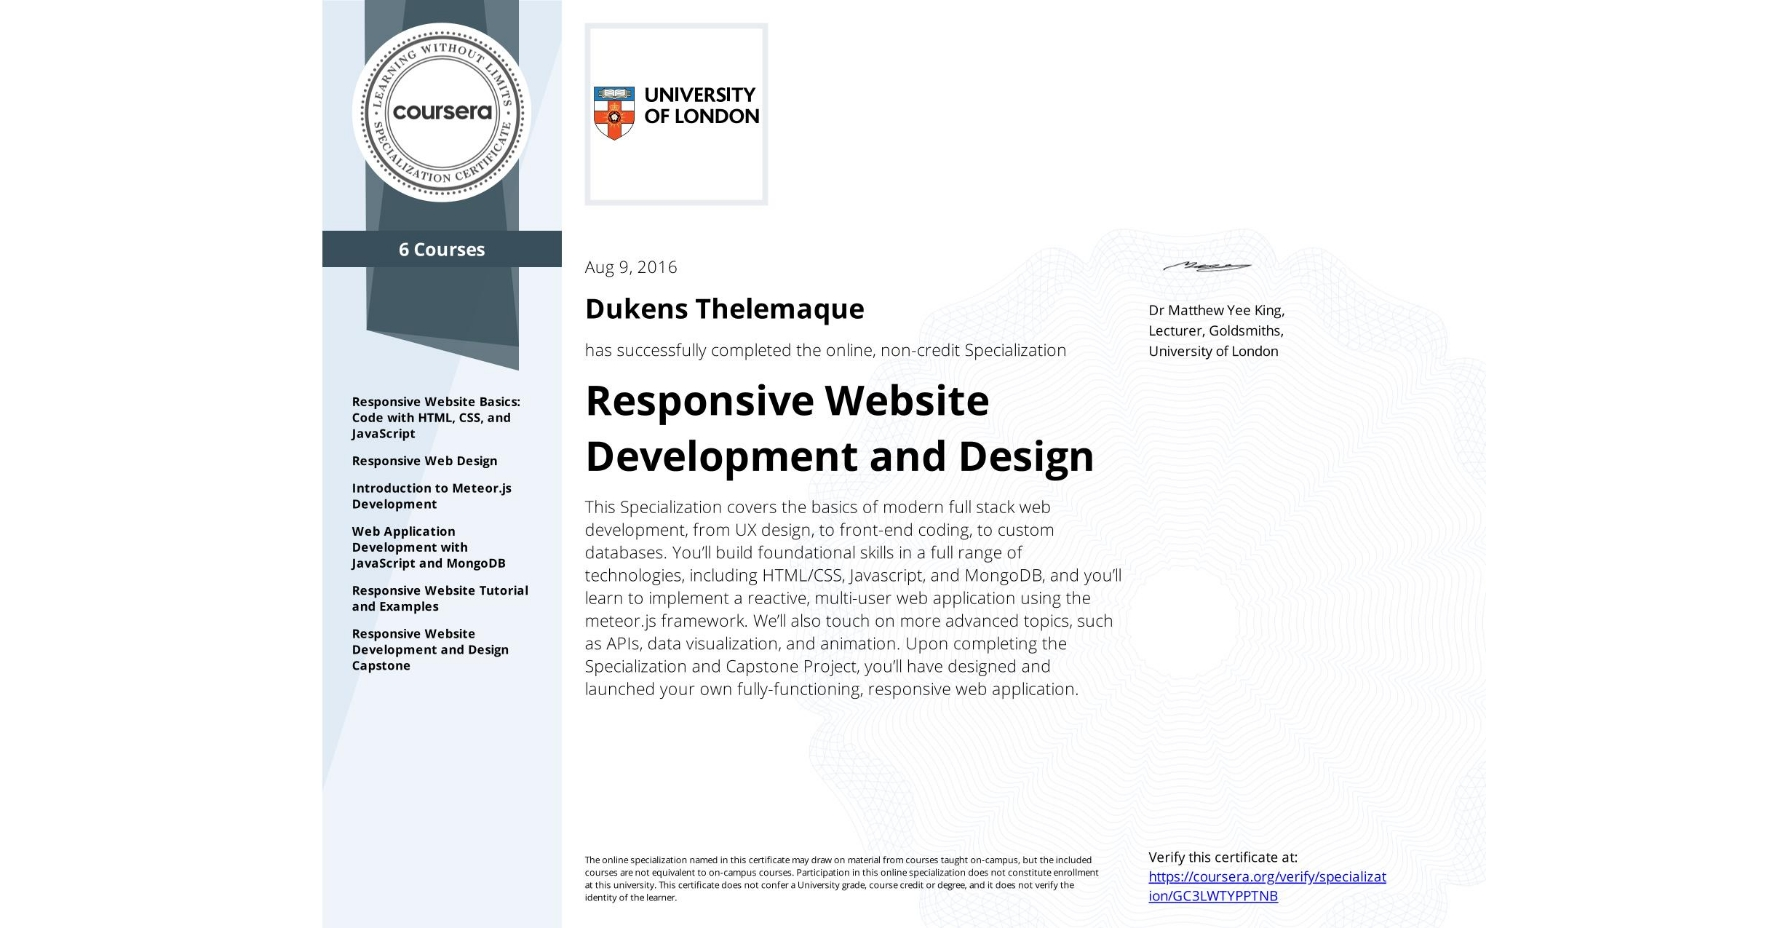 View certificate for Dukens Thelemaque, Responsive Website Development and Design, offered through Coursera. This Specialization covers the basics of modern full stack web development, from UX design, to front-end coding, to custom databases. You'll build foundational skills in a full range of technologies, including HTML/CSS, Javascript, and MongoDB, and you'll learn to implement a reactive, multi-user web application using the meteor.js framework. We'll also touch on more advanced topics, such as APIs, data visualization, and animation. Upon completing the Specialization and Capstone Project, you'll have designed and launched your own fully-functioning, responsive web application.